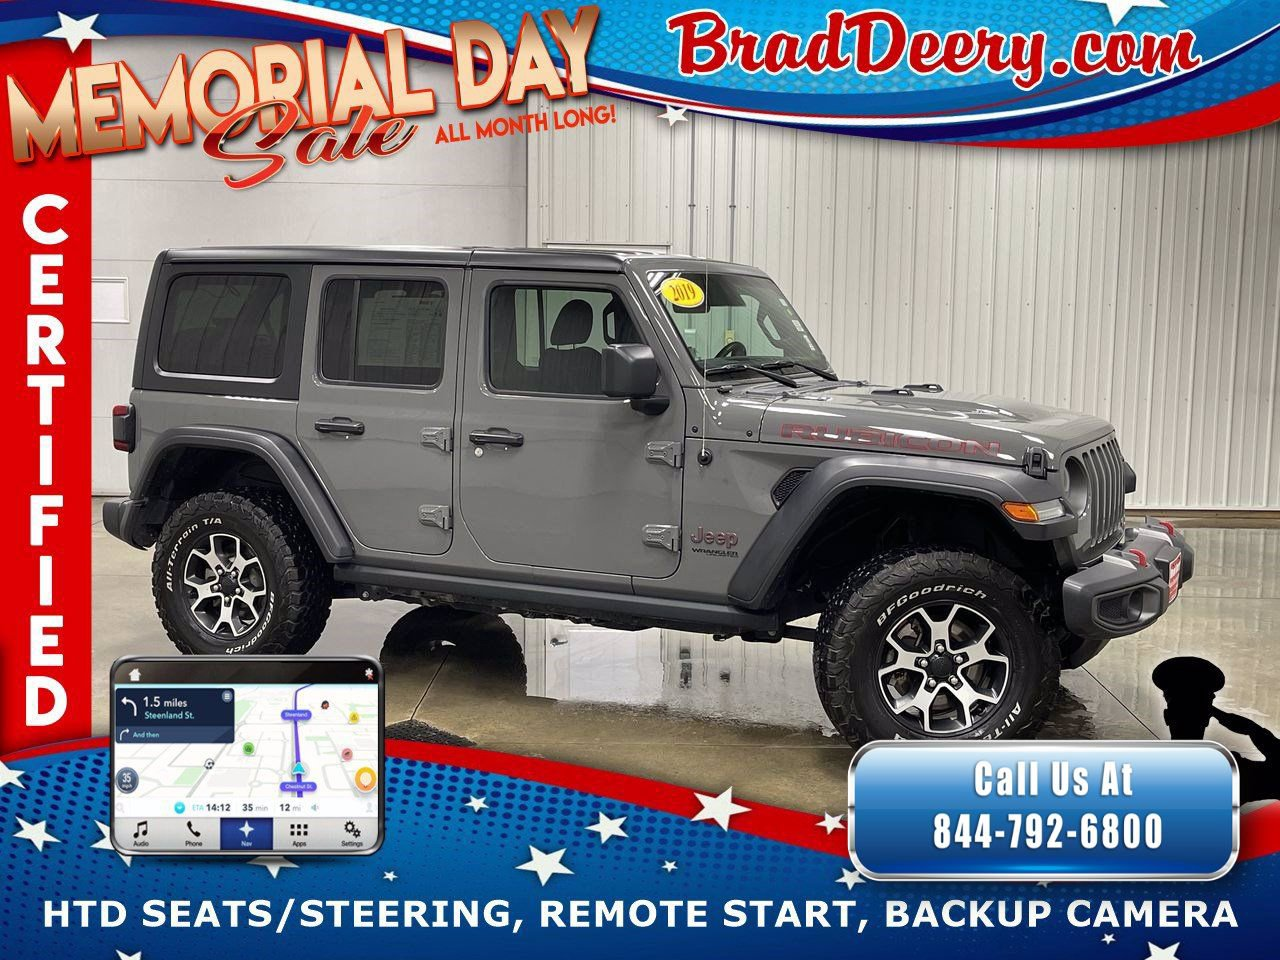 2019 Jeep Wrangler Unlimited 4-Door Rubicon 4x4  **JEEP CERTIFIED** w/ Navigation, Heated Seats, Remote Start & Black 3-Piece Hardtop